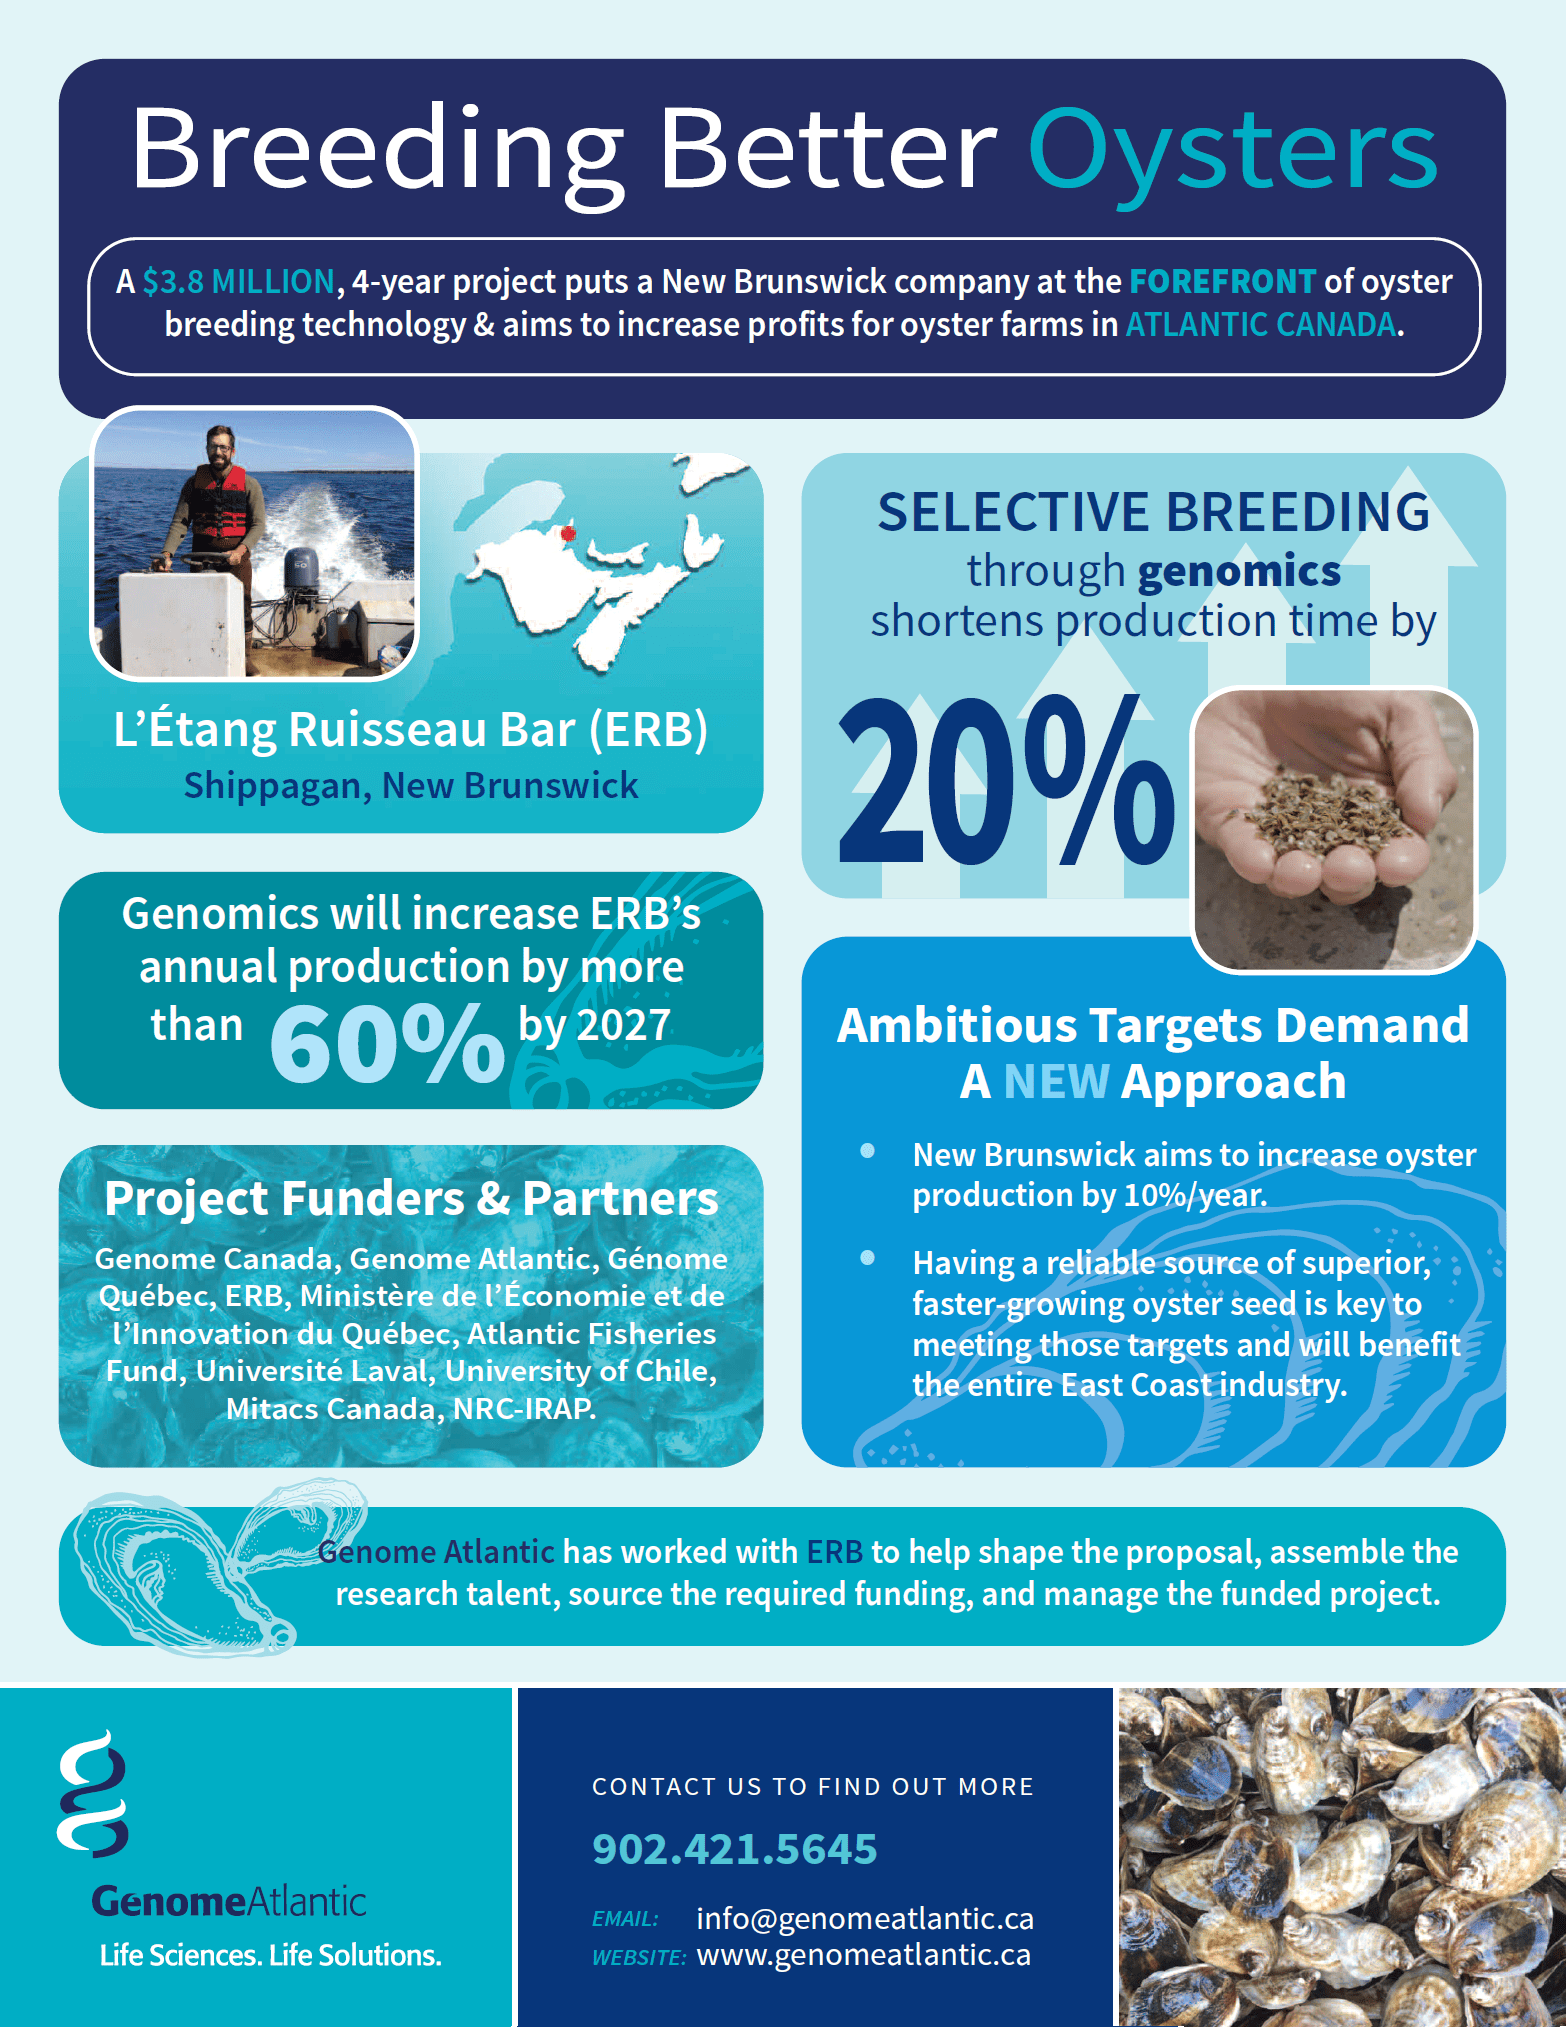 Breeding Better Oysters Infographic